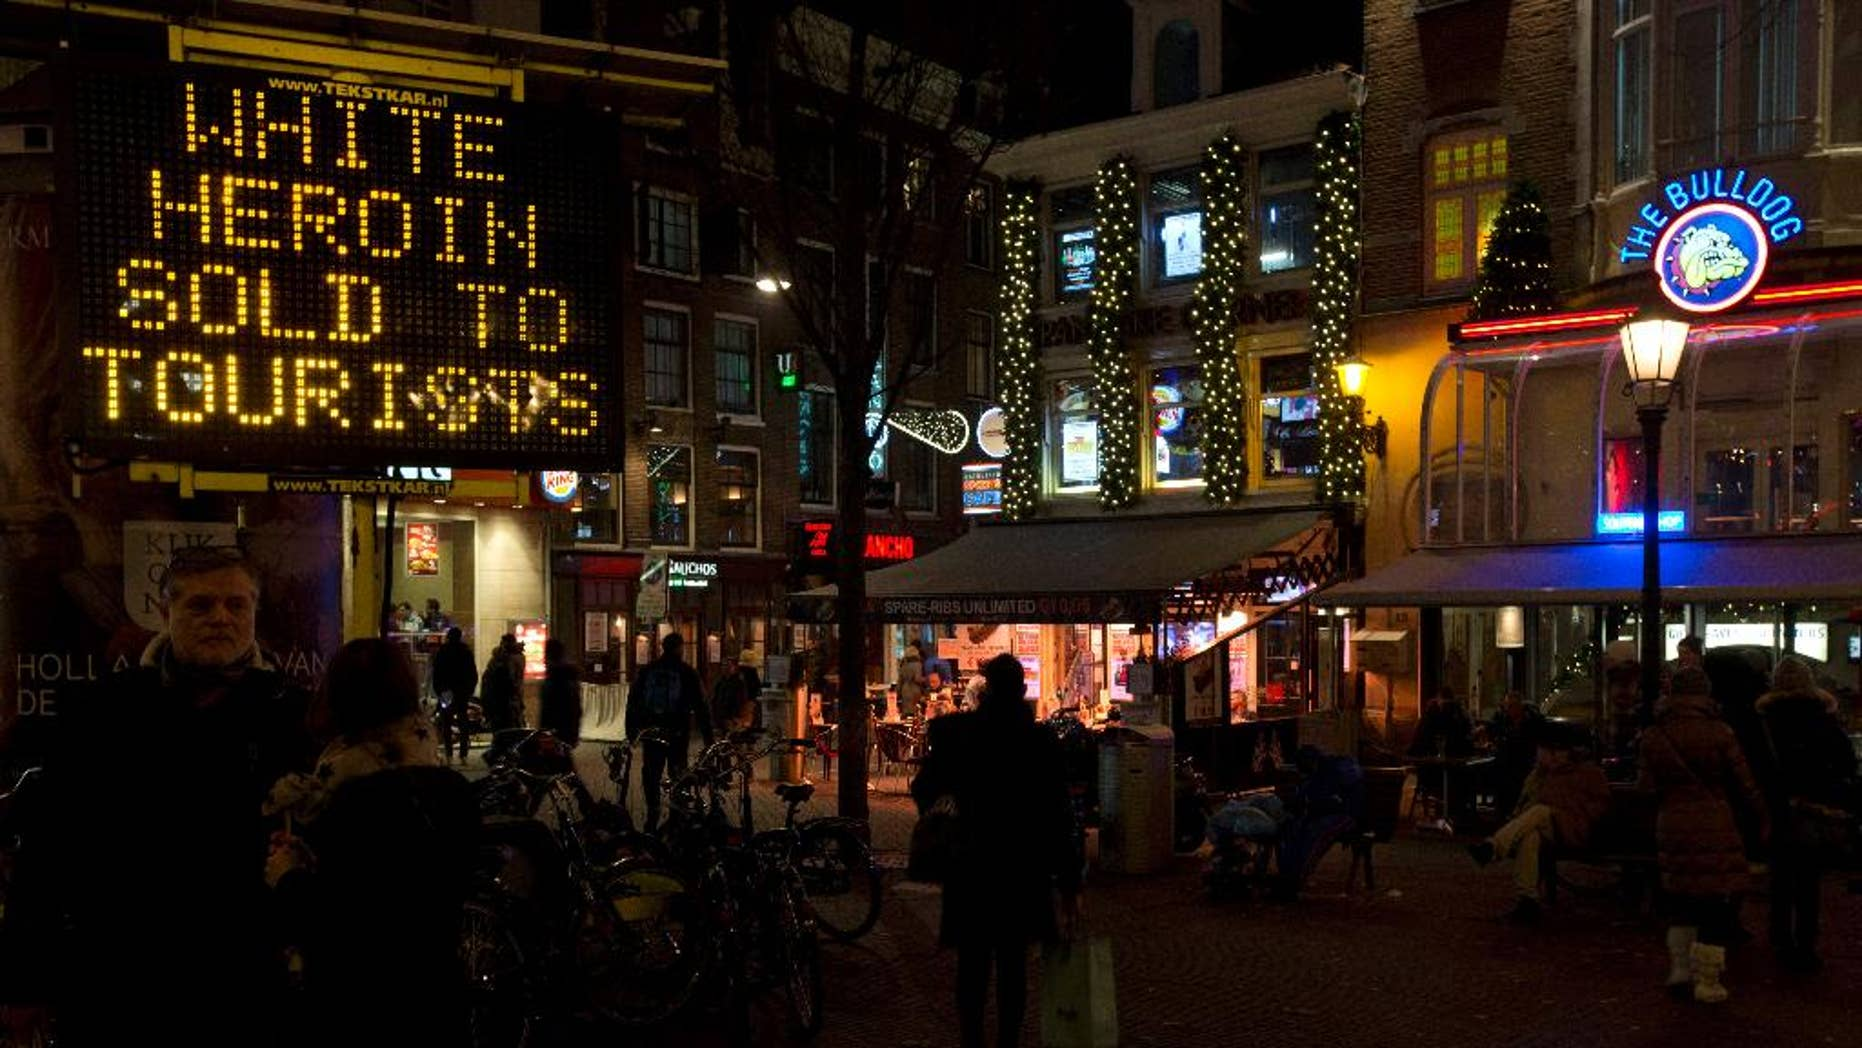 """FILE - In this Dec. 5, 2014 file photo an electronic sign outside Amsterdam's famous Bulldog coffee shop, right, warns tourists of """"white heroin"""", an extremely dangerous drug which is being sold as cocaine to tourists in Amsterdam. Police in Amsterdam said Tuesday April 7, 2015, that a 42-year-old man who turned himself in on Saturday could be a dealer who sold white heroin to tourists, telling them that it was cocaine, three tourists have died in recent months and 20 other became unwell after taking heroin. (AP Photo/Peter Dejong, File)"""